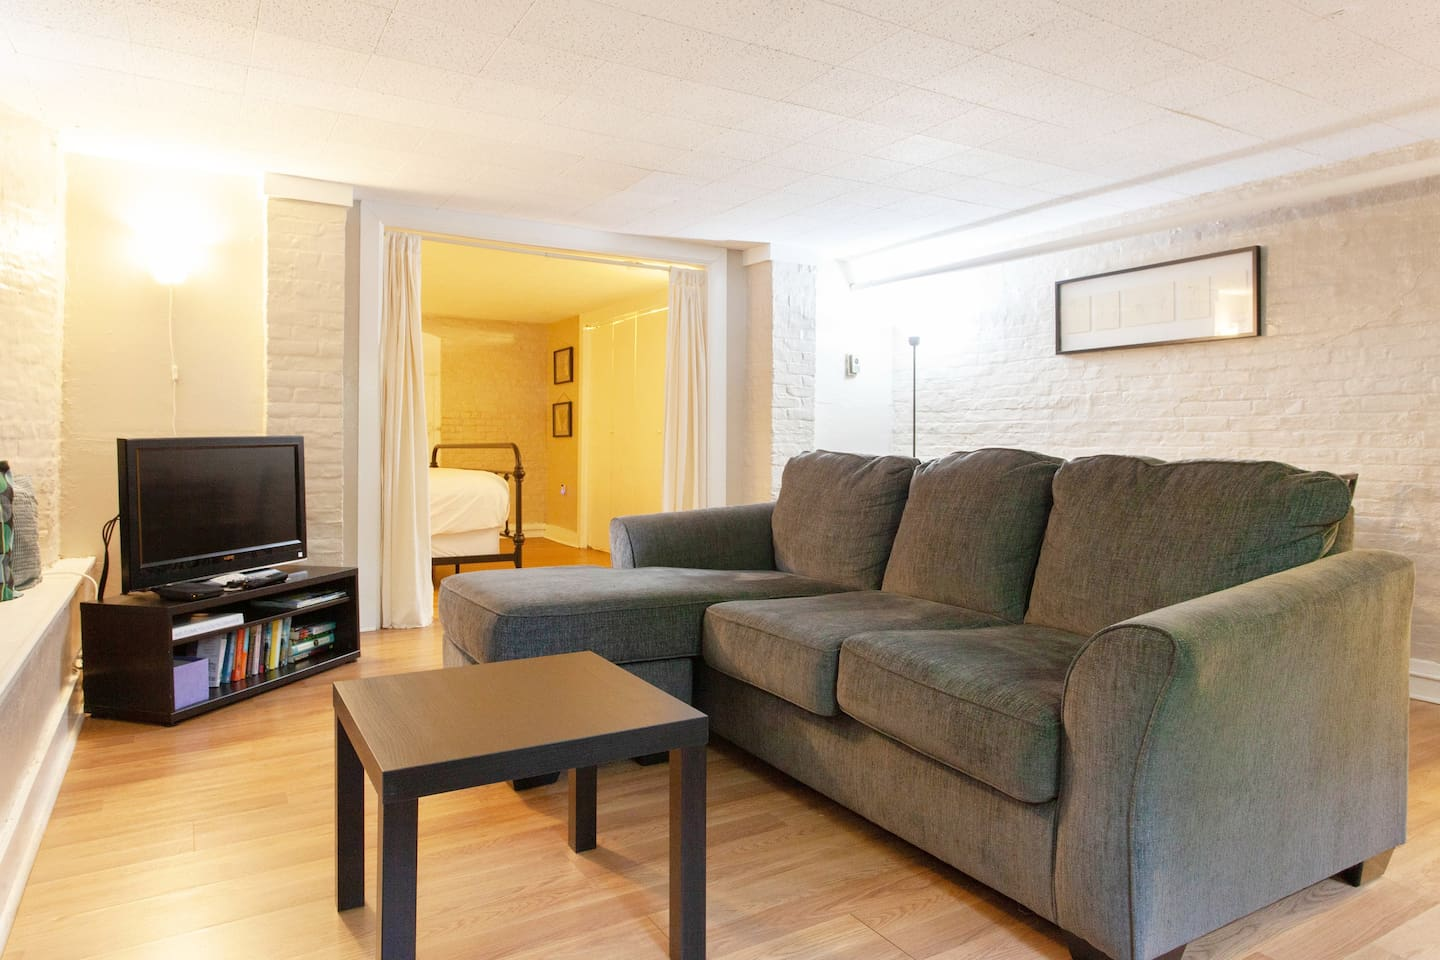 Spacious and stylish one bedroom basement apartment